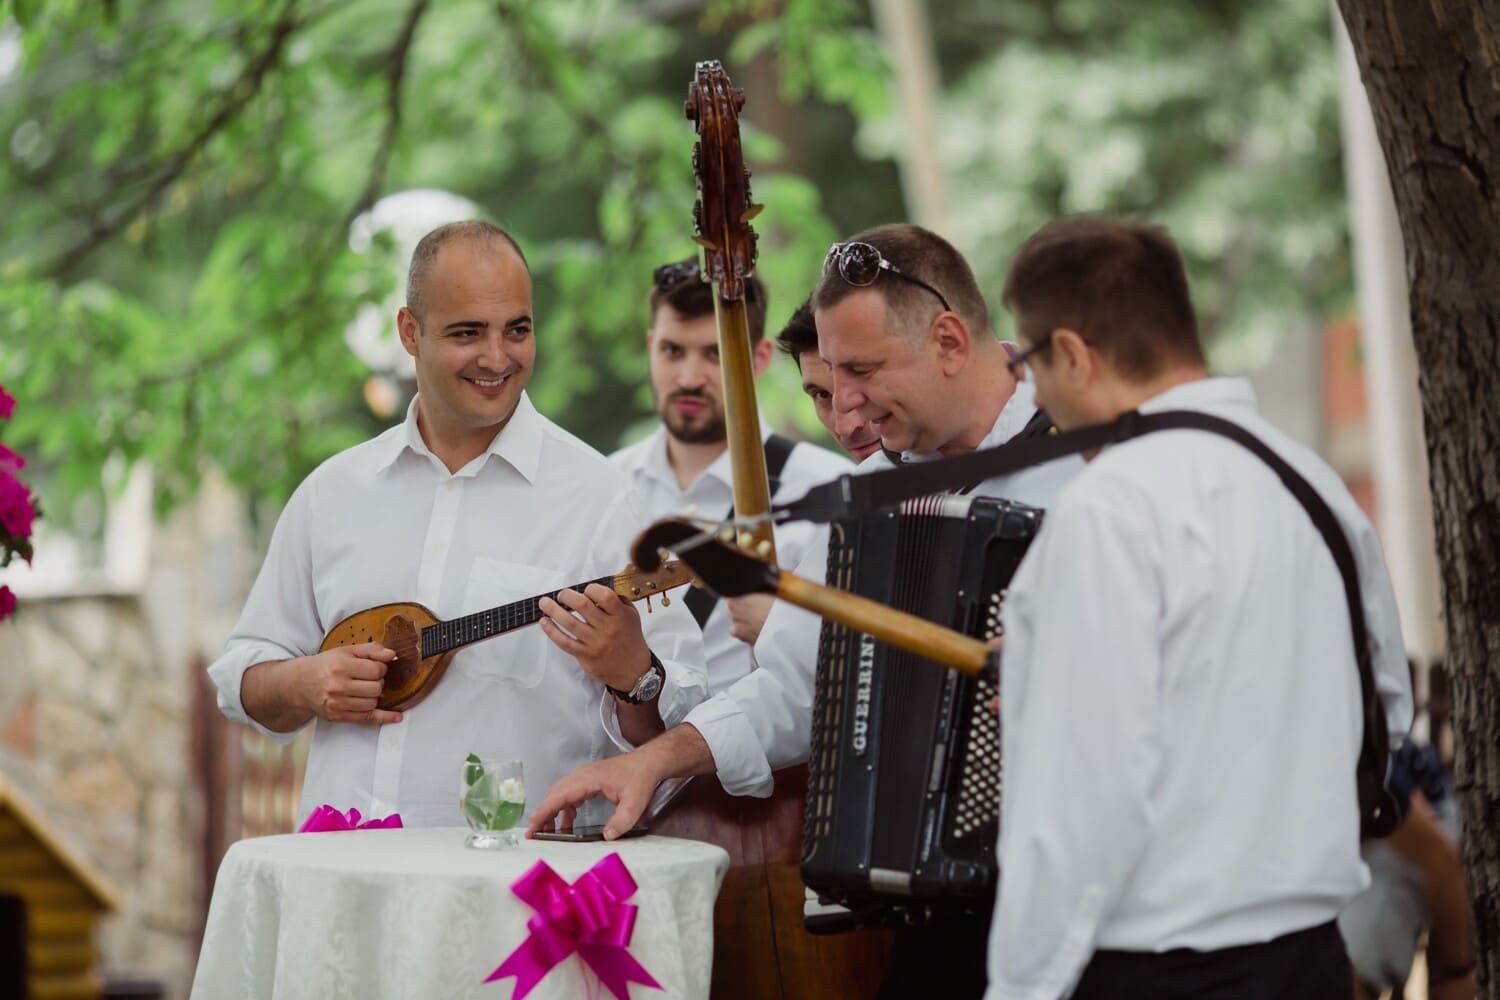 musician, ceremony, accordion, guitarist, orchestra, guitar, singer, smiling, folk, music